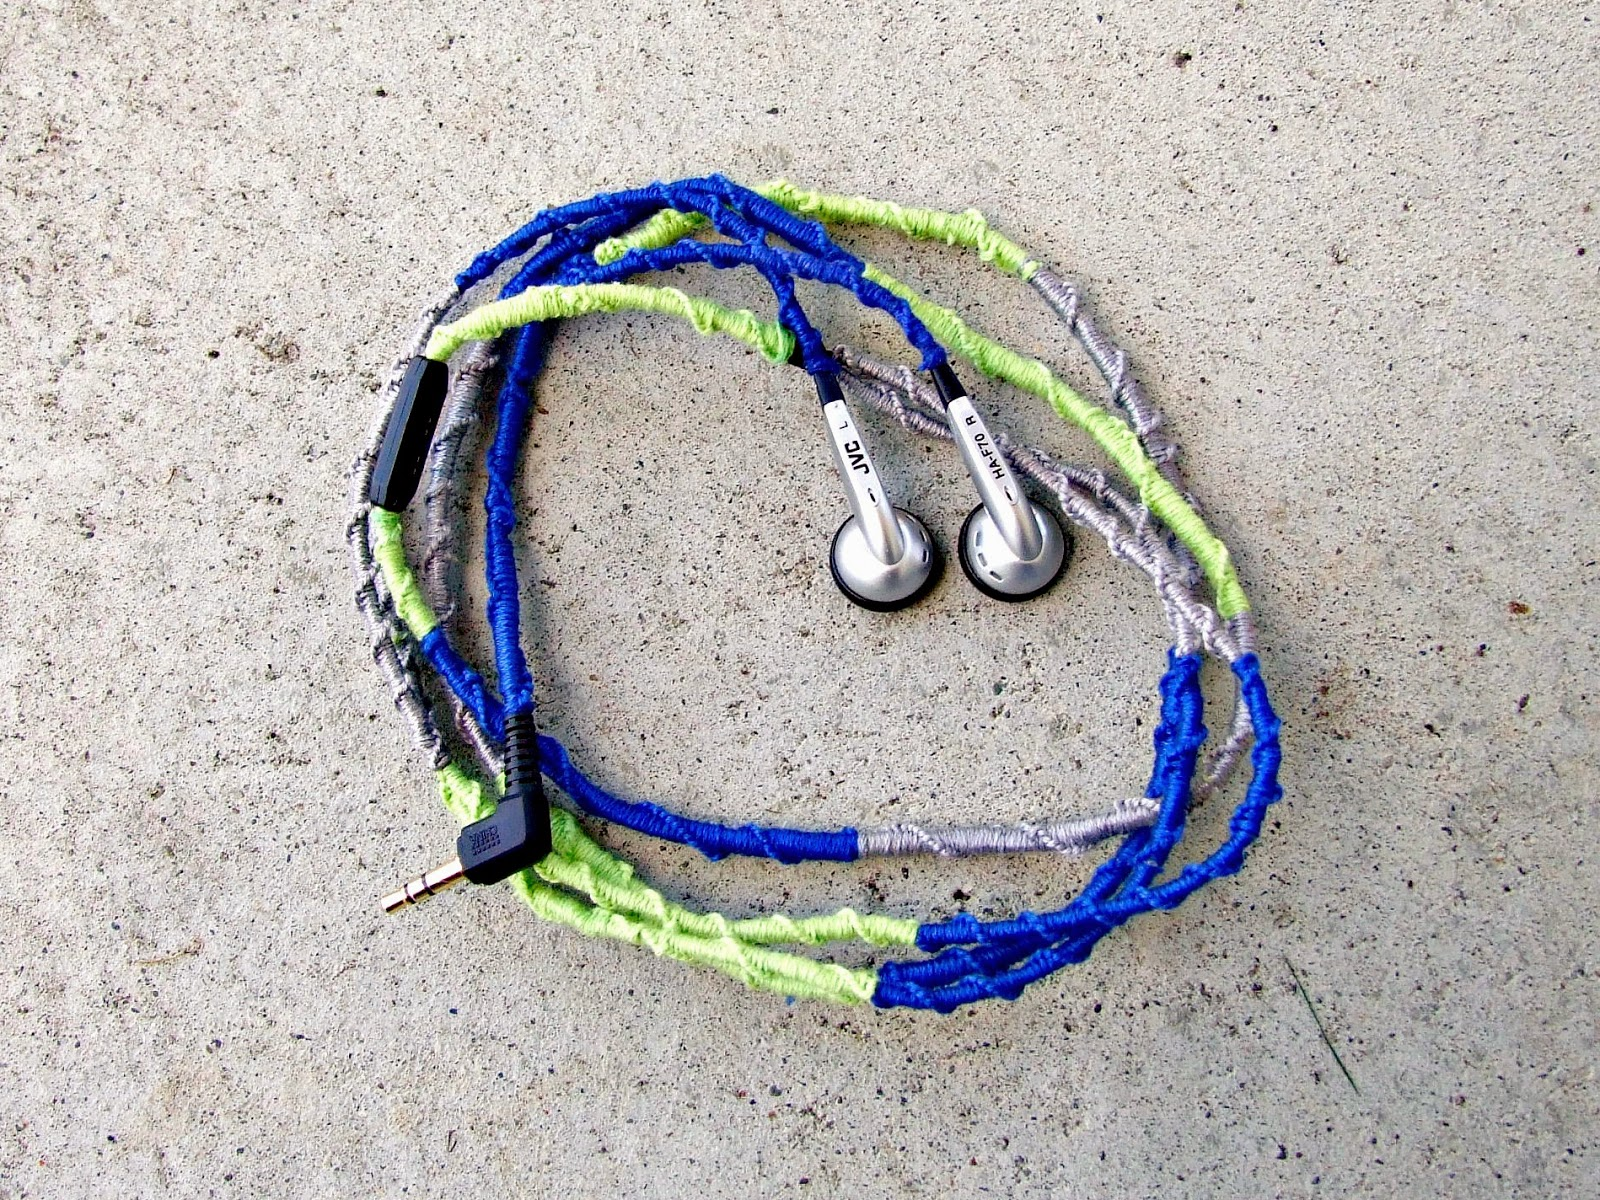 Paper Tape U0026 Pins Easy DIY Tangle Free No Hassle Embroidery Floss Wrapped Headphones!